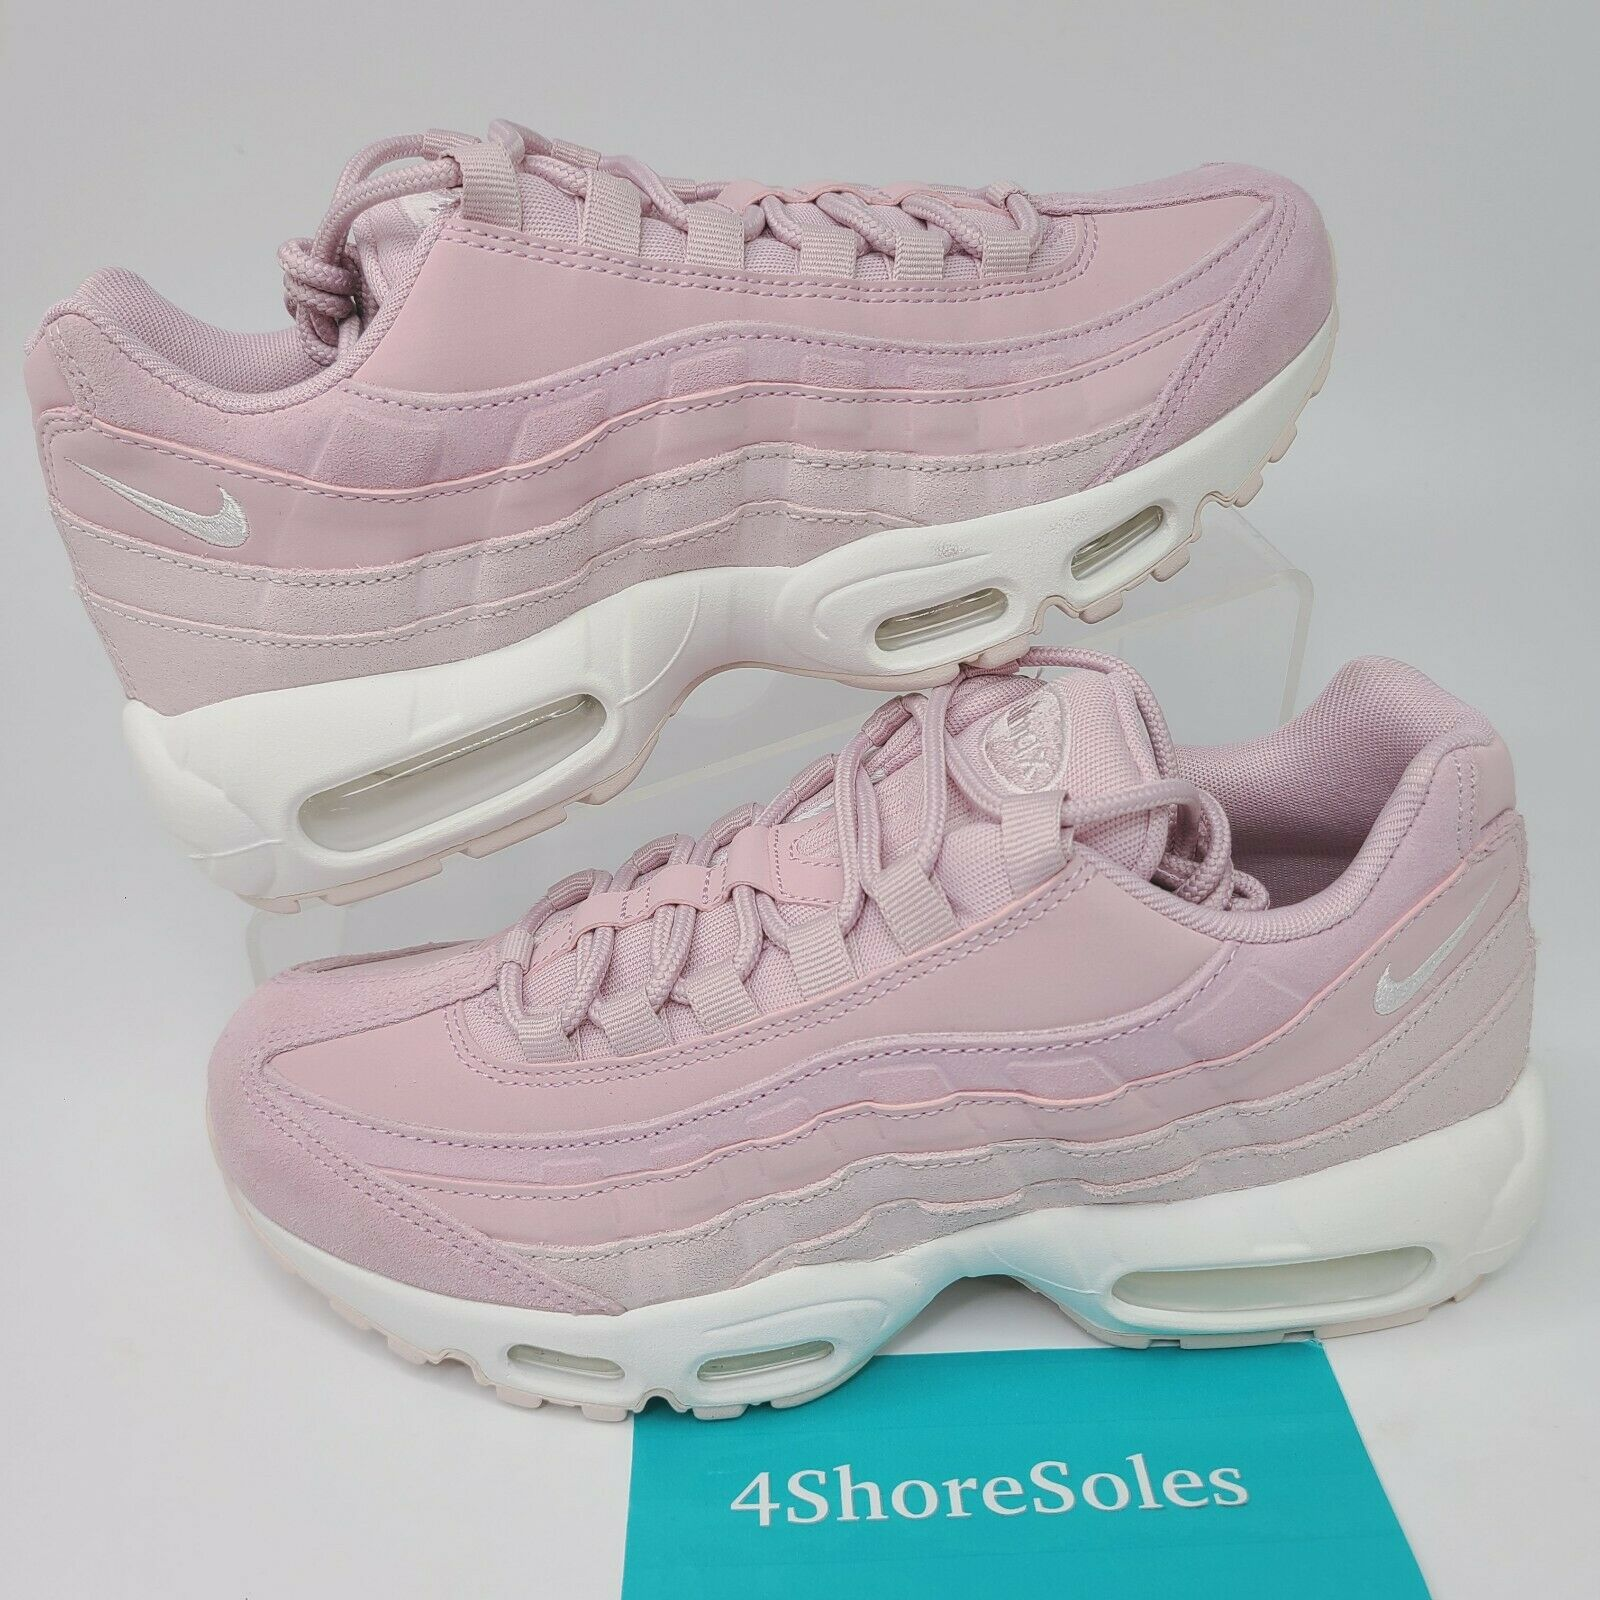 Size 8 - Nike Air Max 95 Premium Barely Rose for sale online   eBay